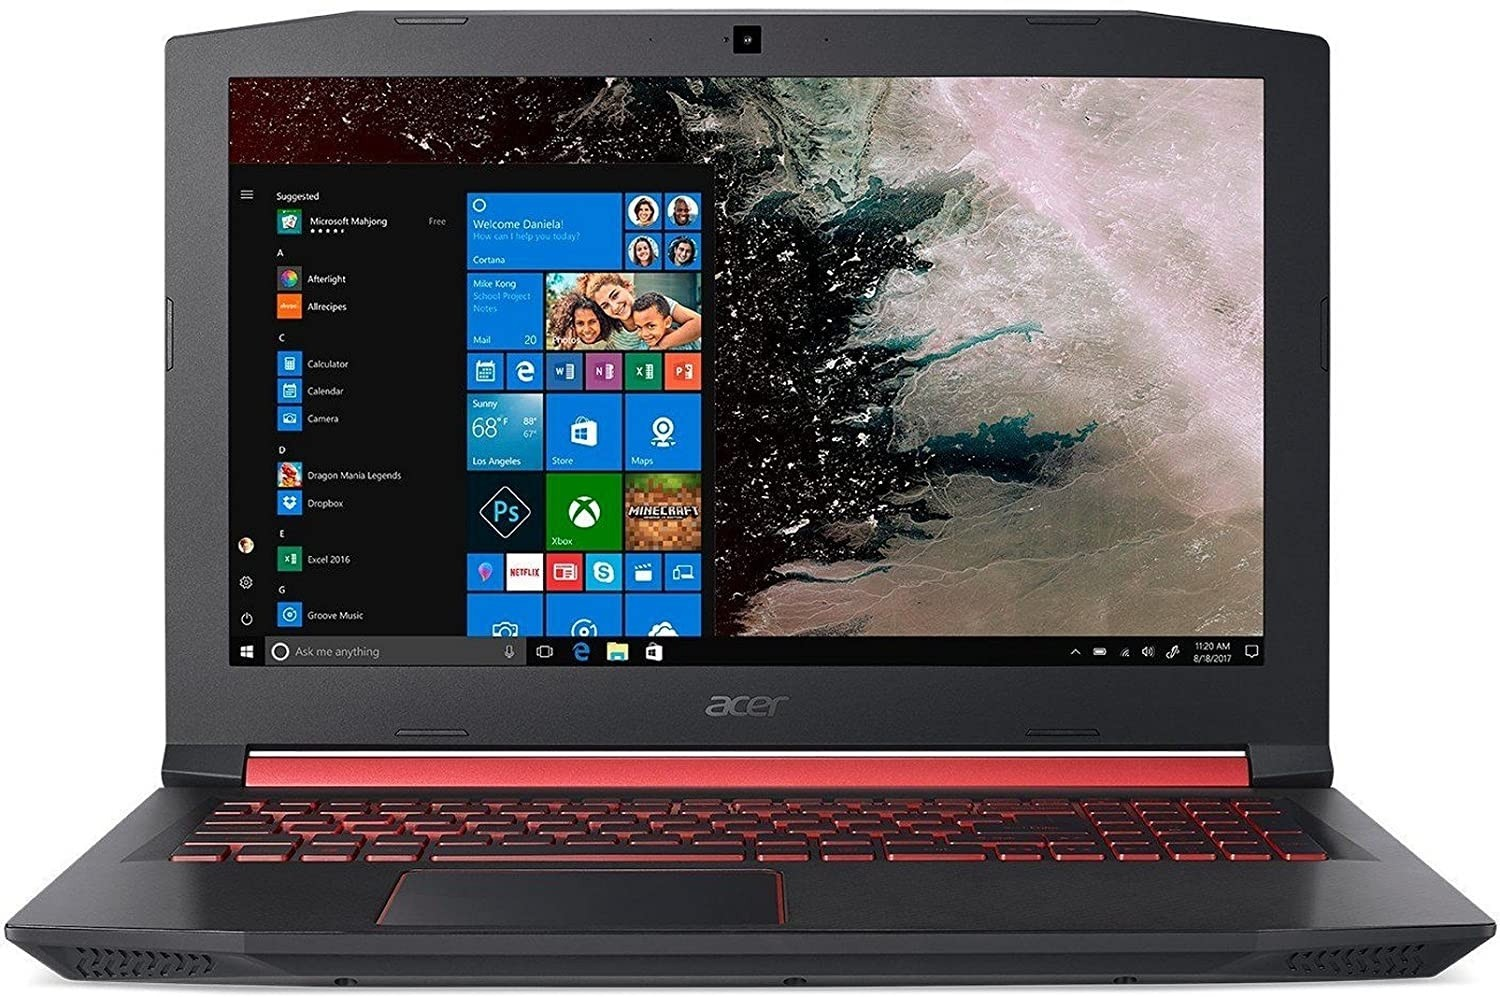 Refurbished laptops & desktops - Acer Nitro 5 An515-52 Core I7 8Th Gen, 15.6-Inch Gaming Laptop (8GB Ram /128 GB SSD With 1TB HDD/Win 10/Nvidia Graphics 1050Ti 4GB/Black)